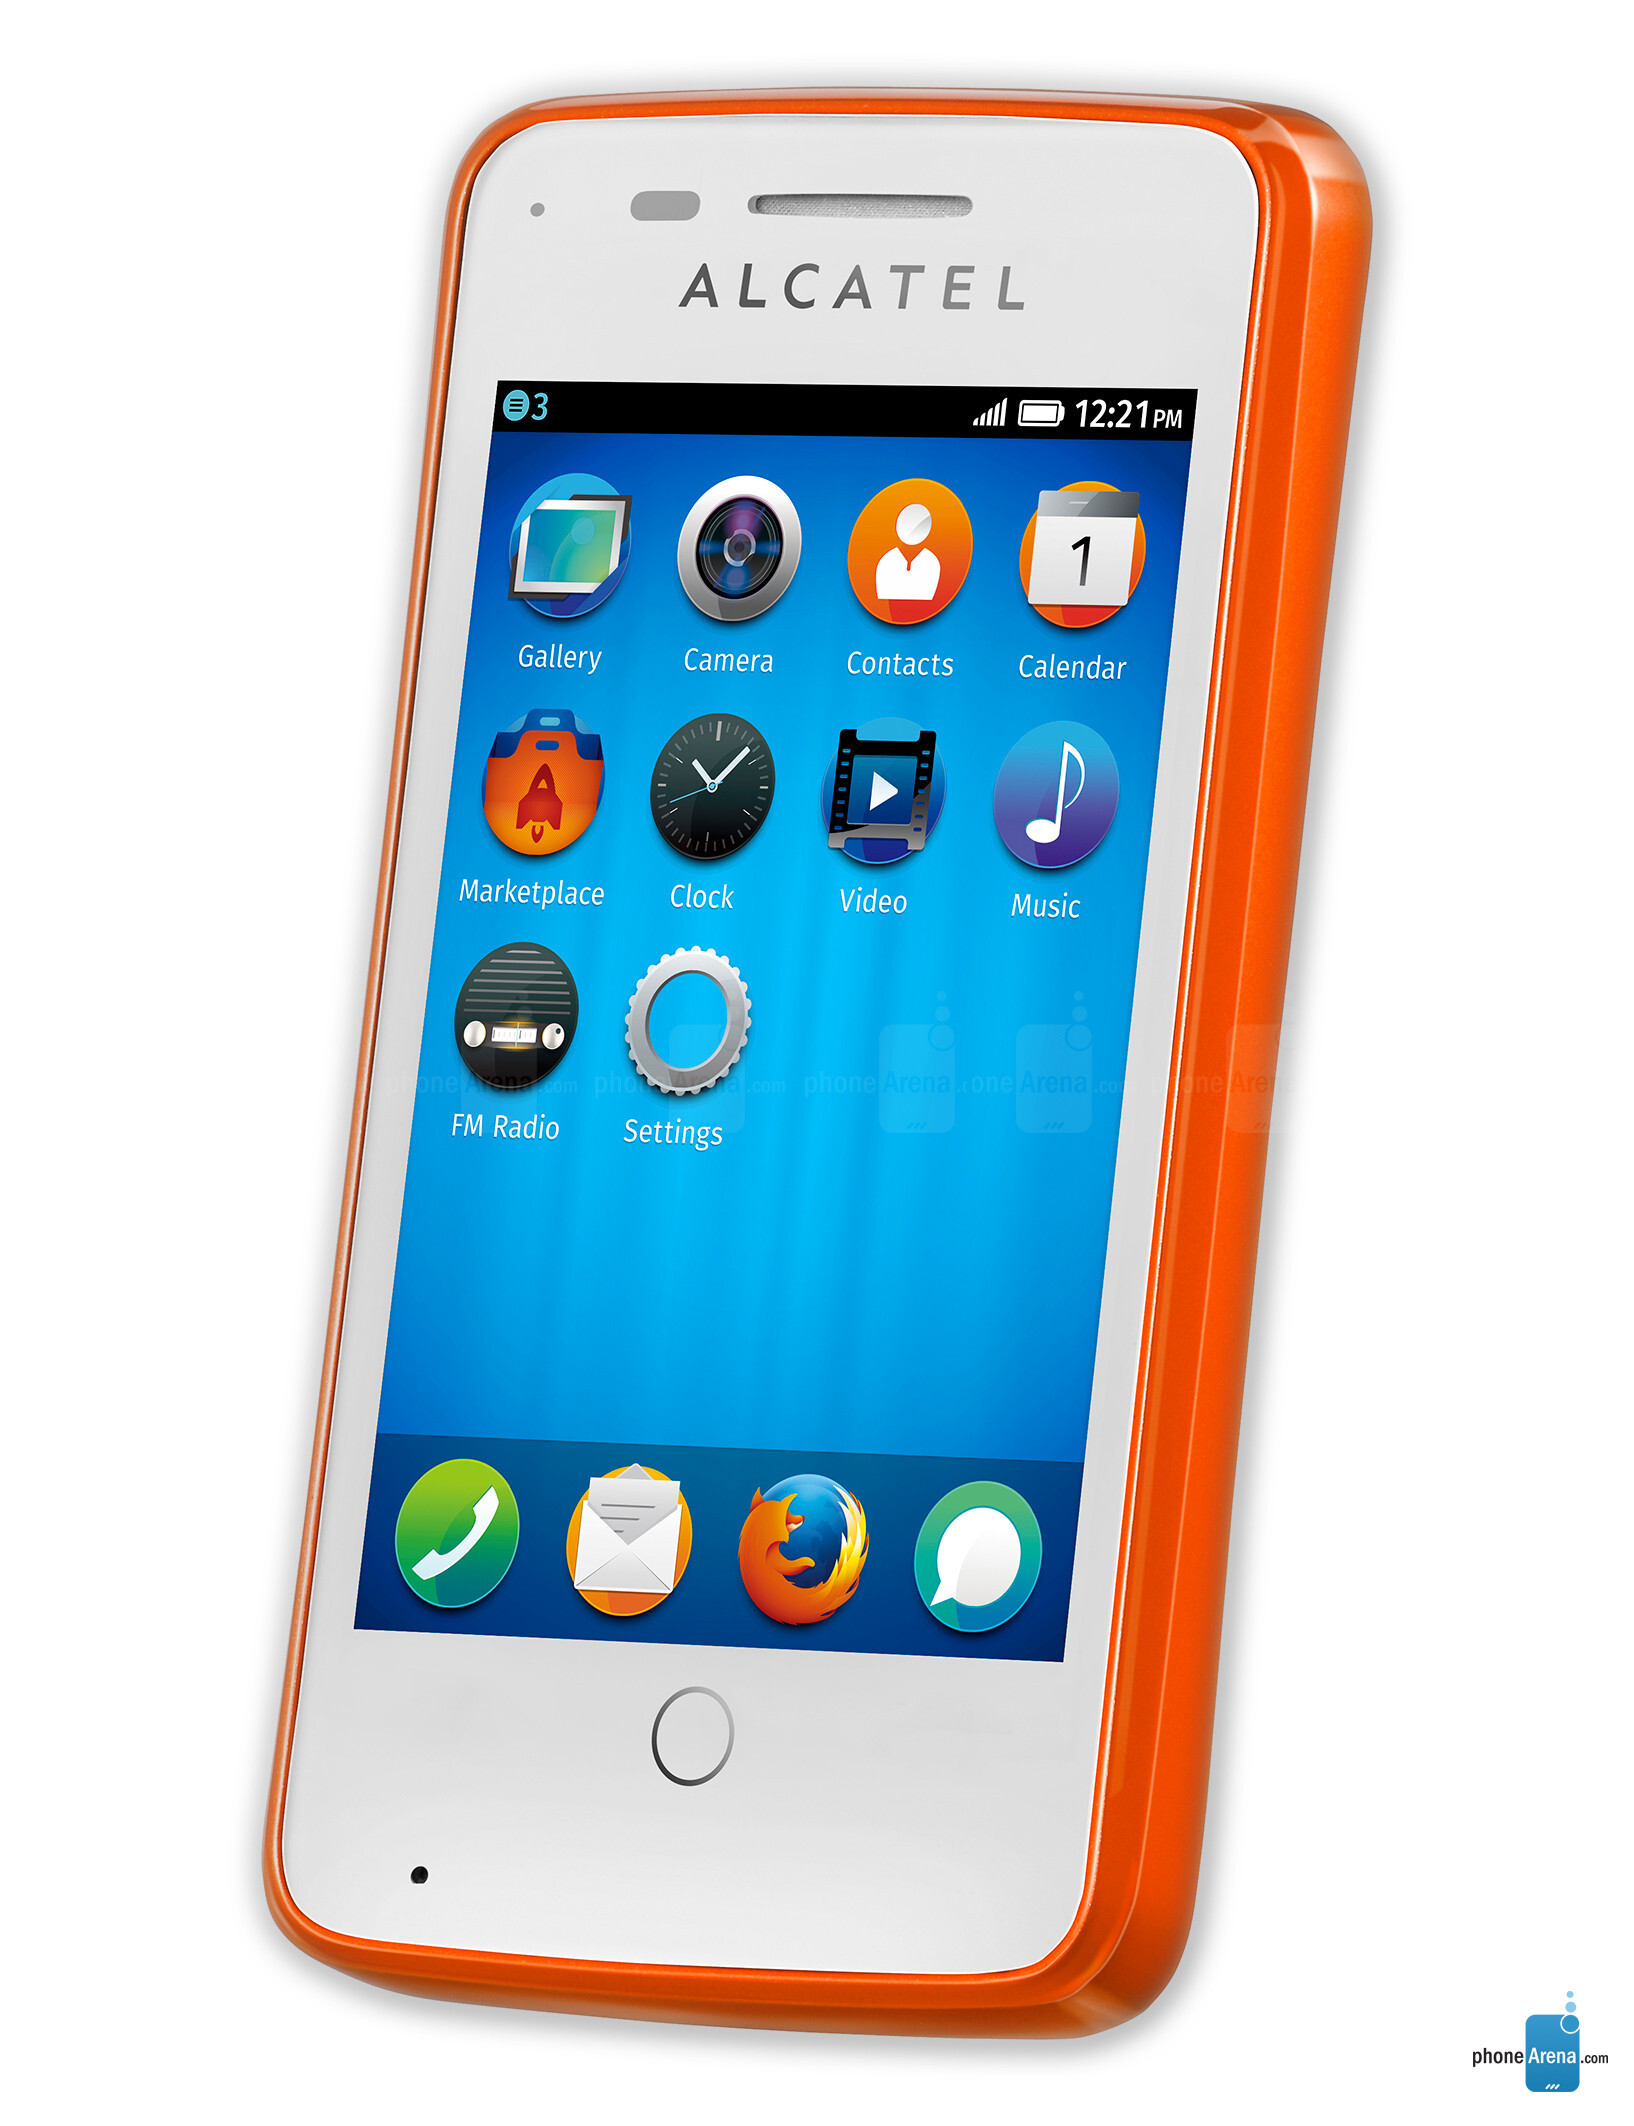 Alcatel OneTouch Fire specs